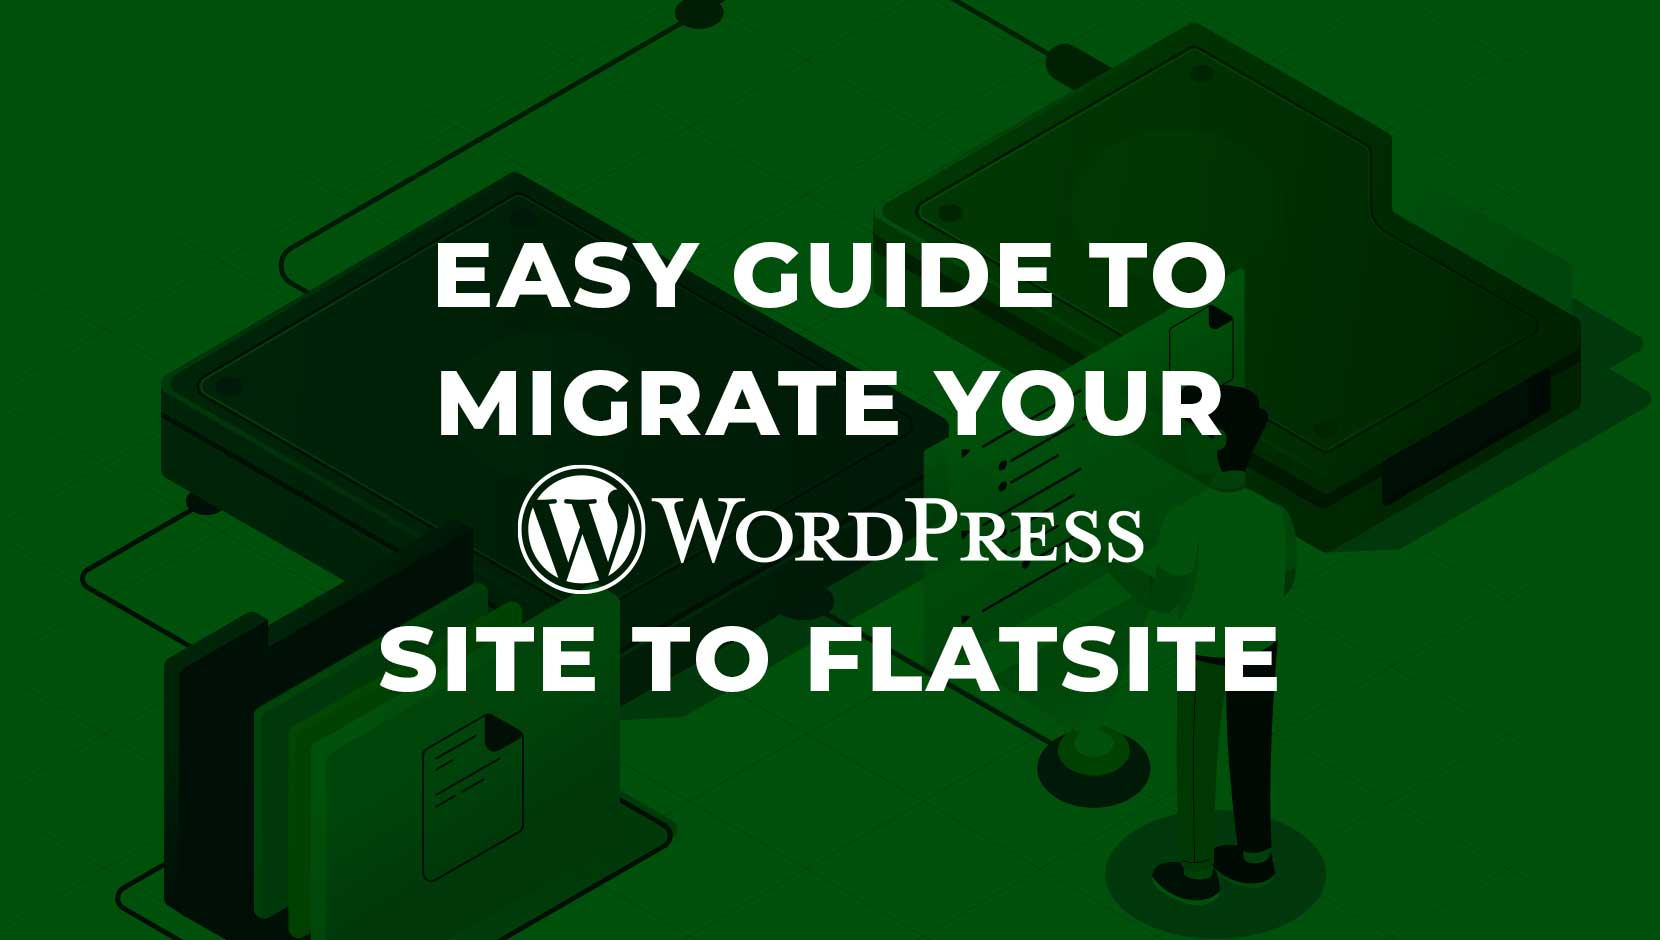 Easy Guide To Migrate Your WordPress Site To FLATsite